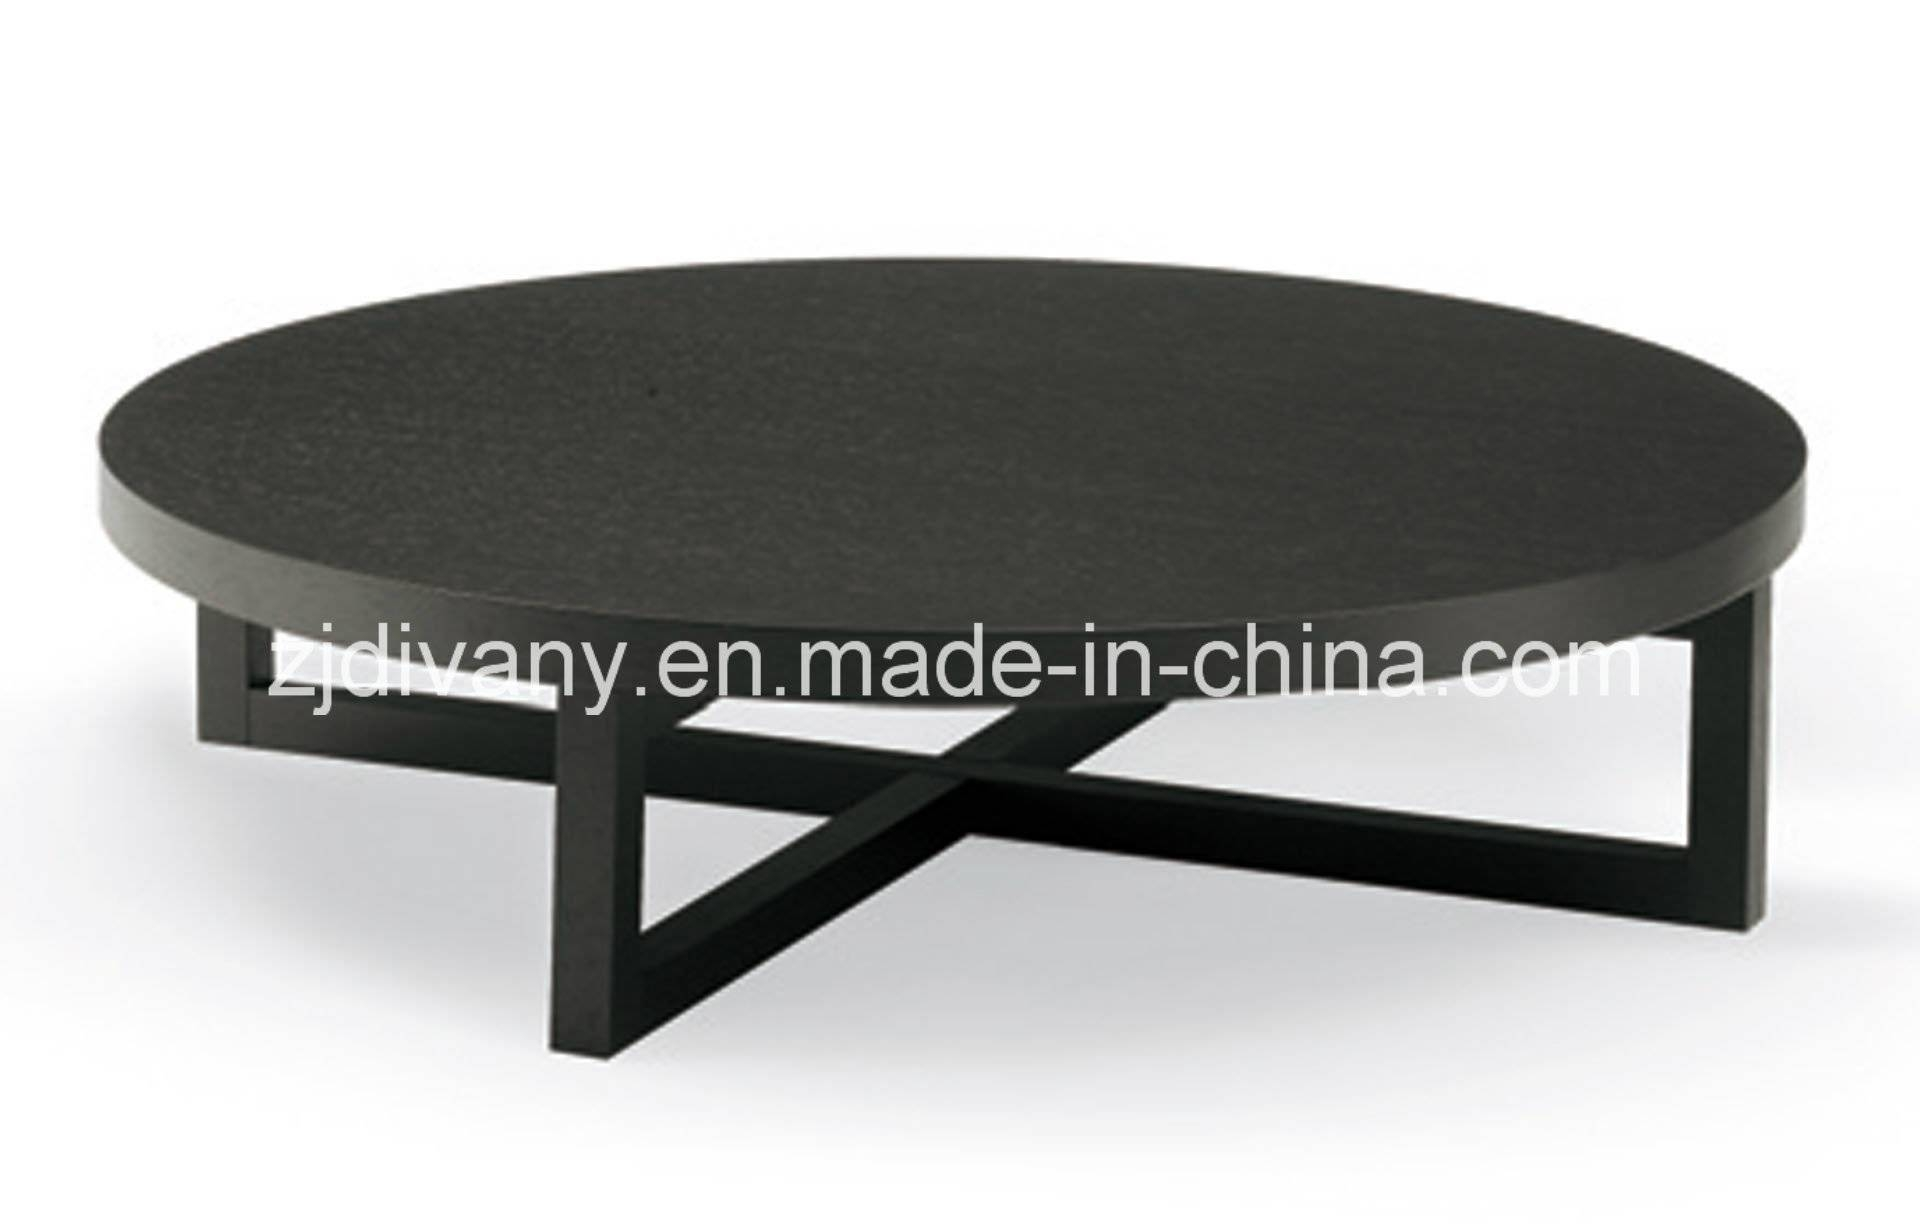 30 photos large round low coffee tables low coffee tables uk for large round low coffee tables image 18 of 30 geotapseo Images